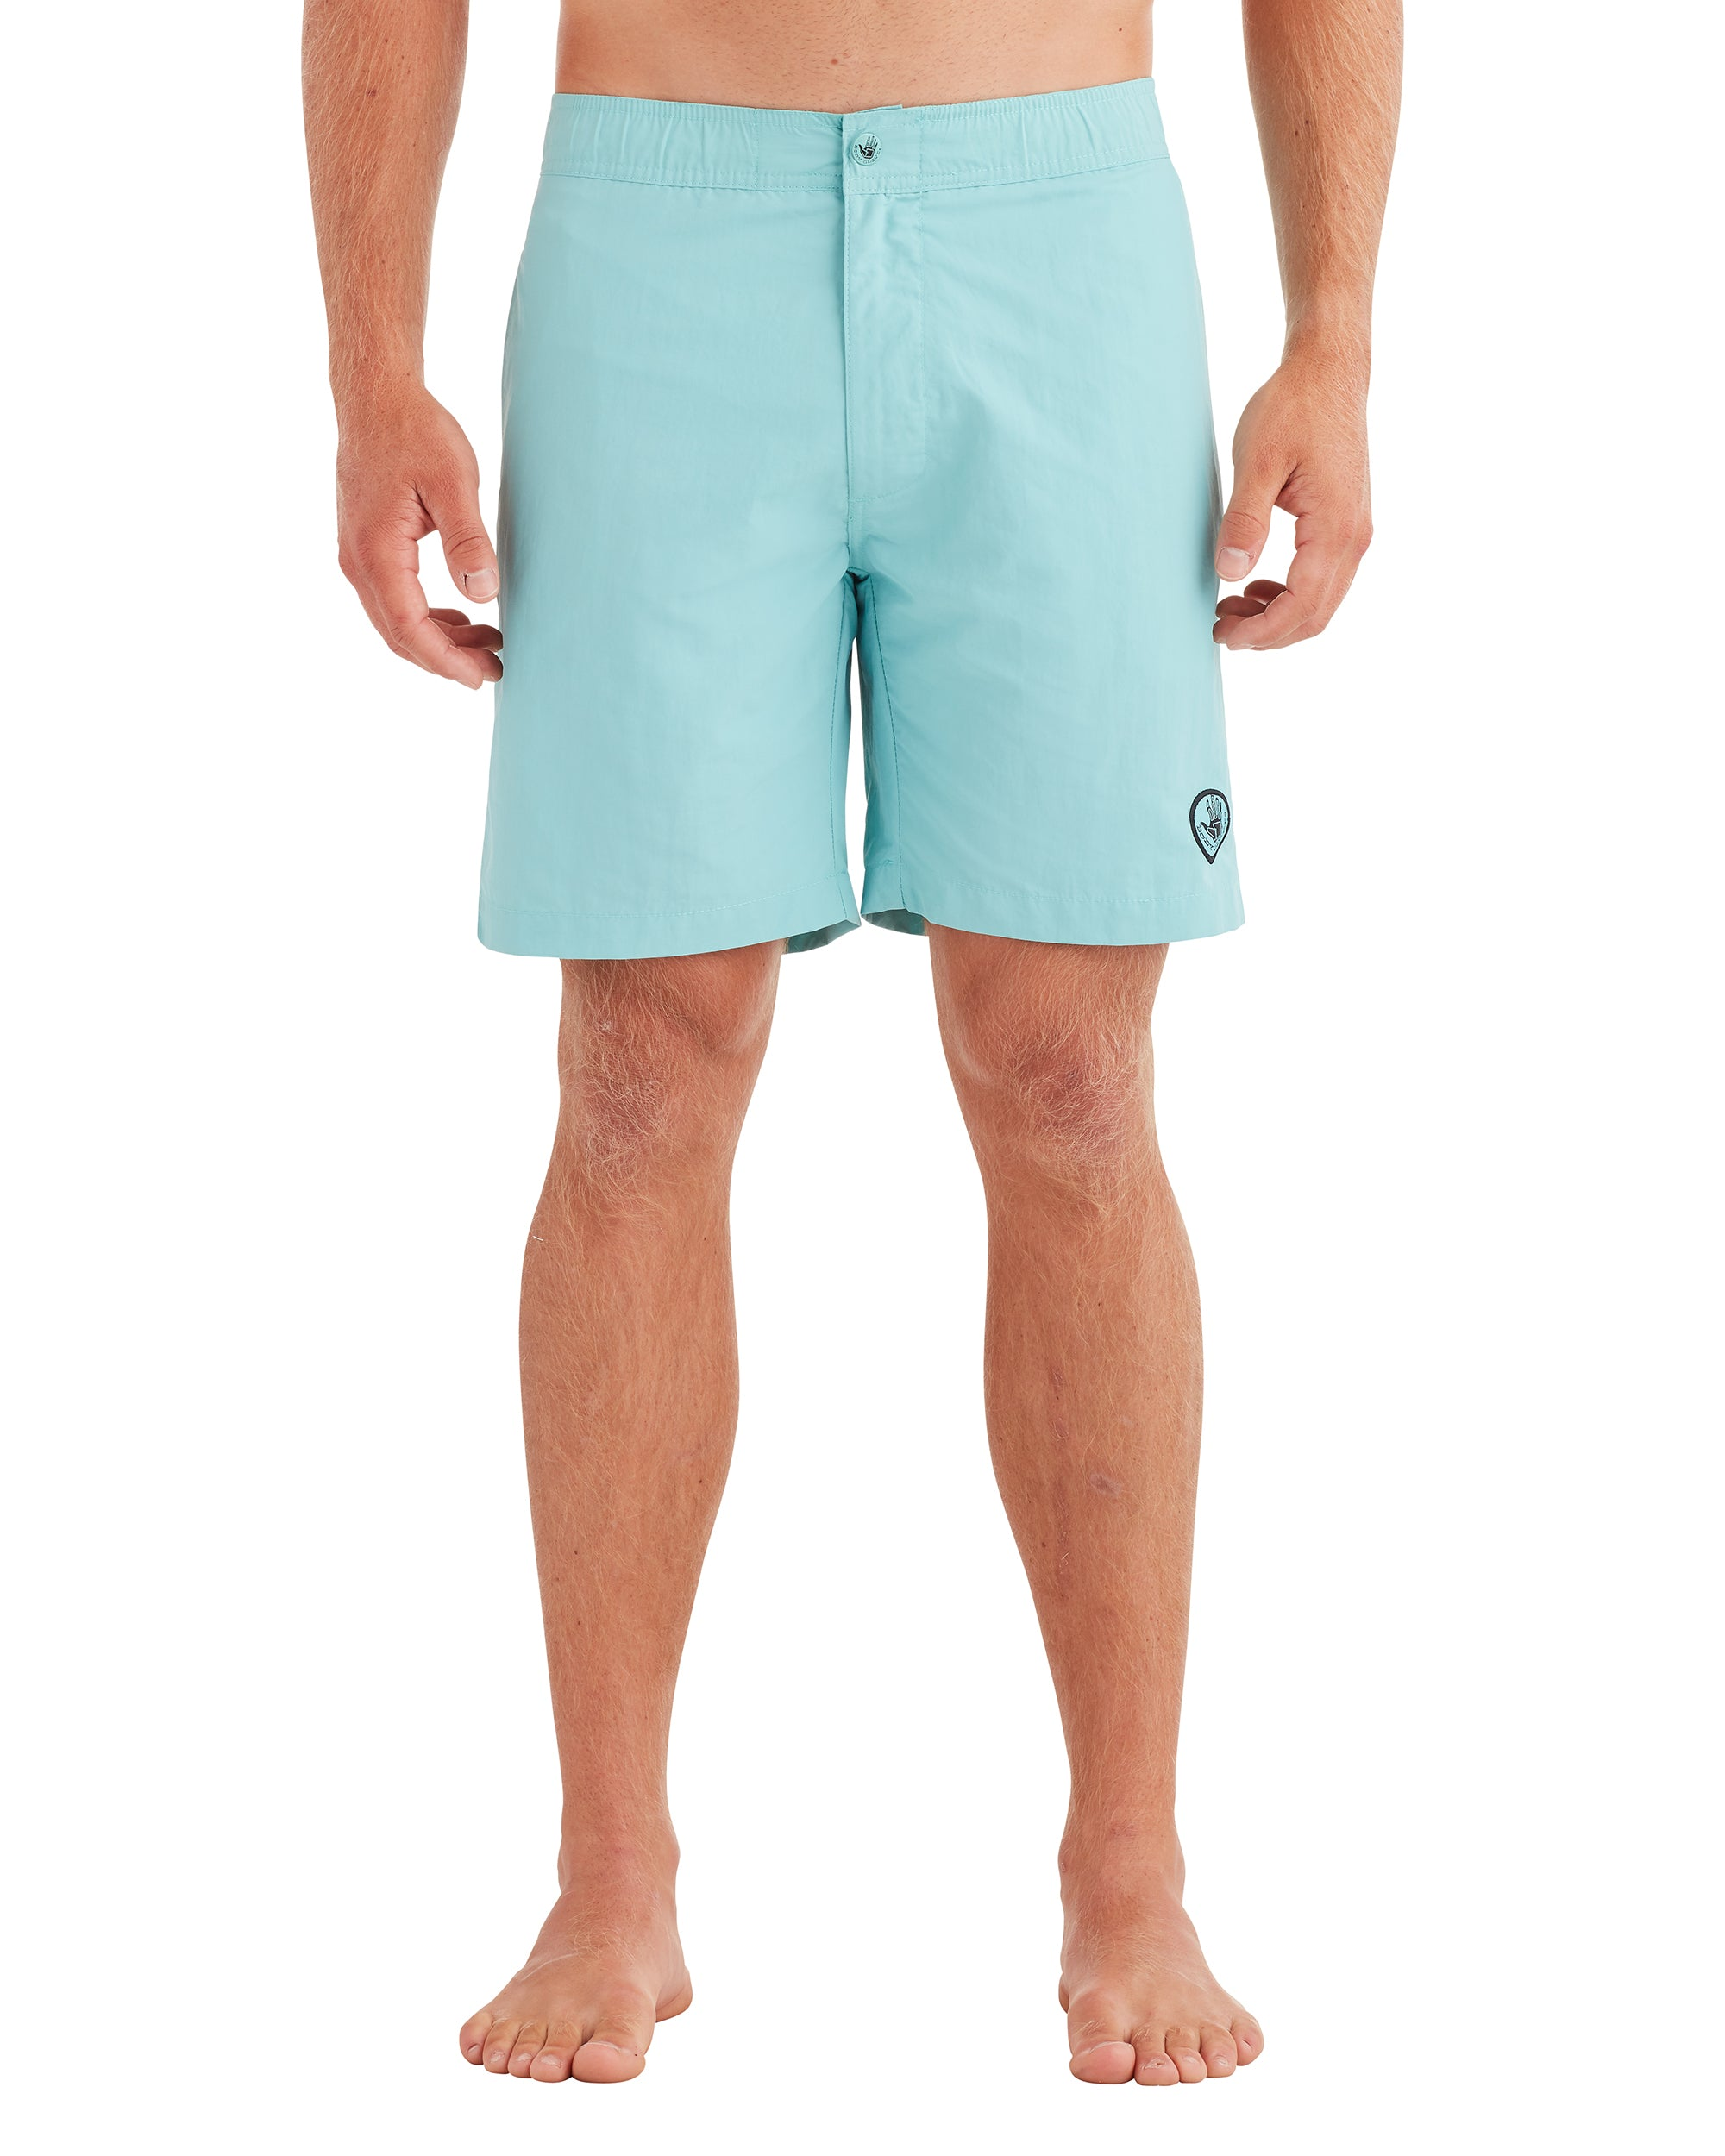 Men's Elastic Button-Front Swim Short - Aqua